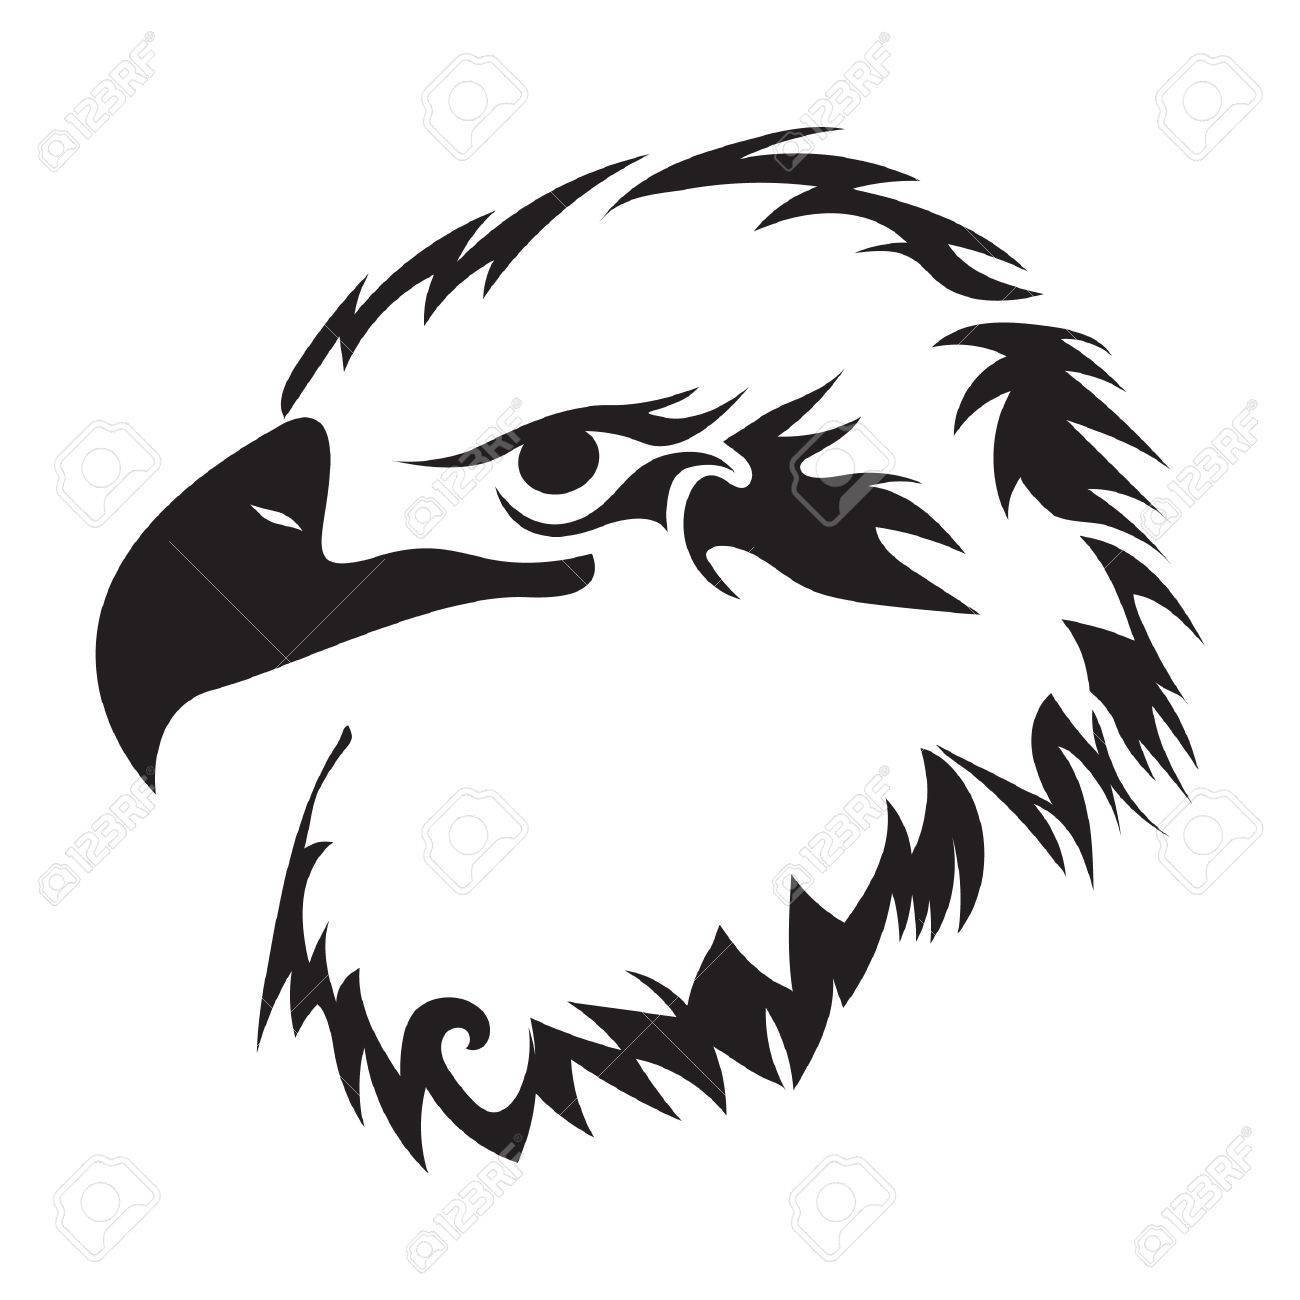 1300x1300 Eagle Tattoo Design Royalty Free Cliparts Vectors And Stock